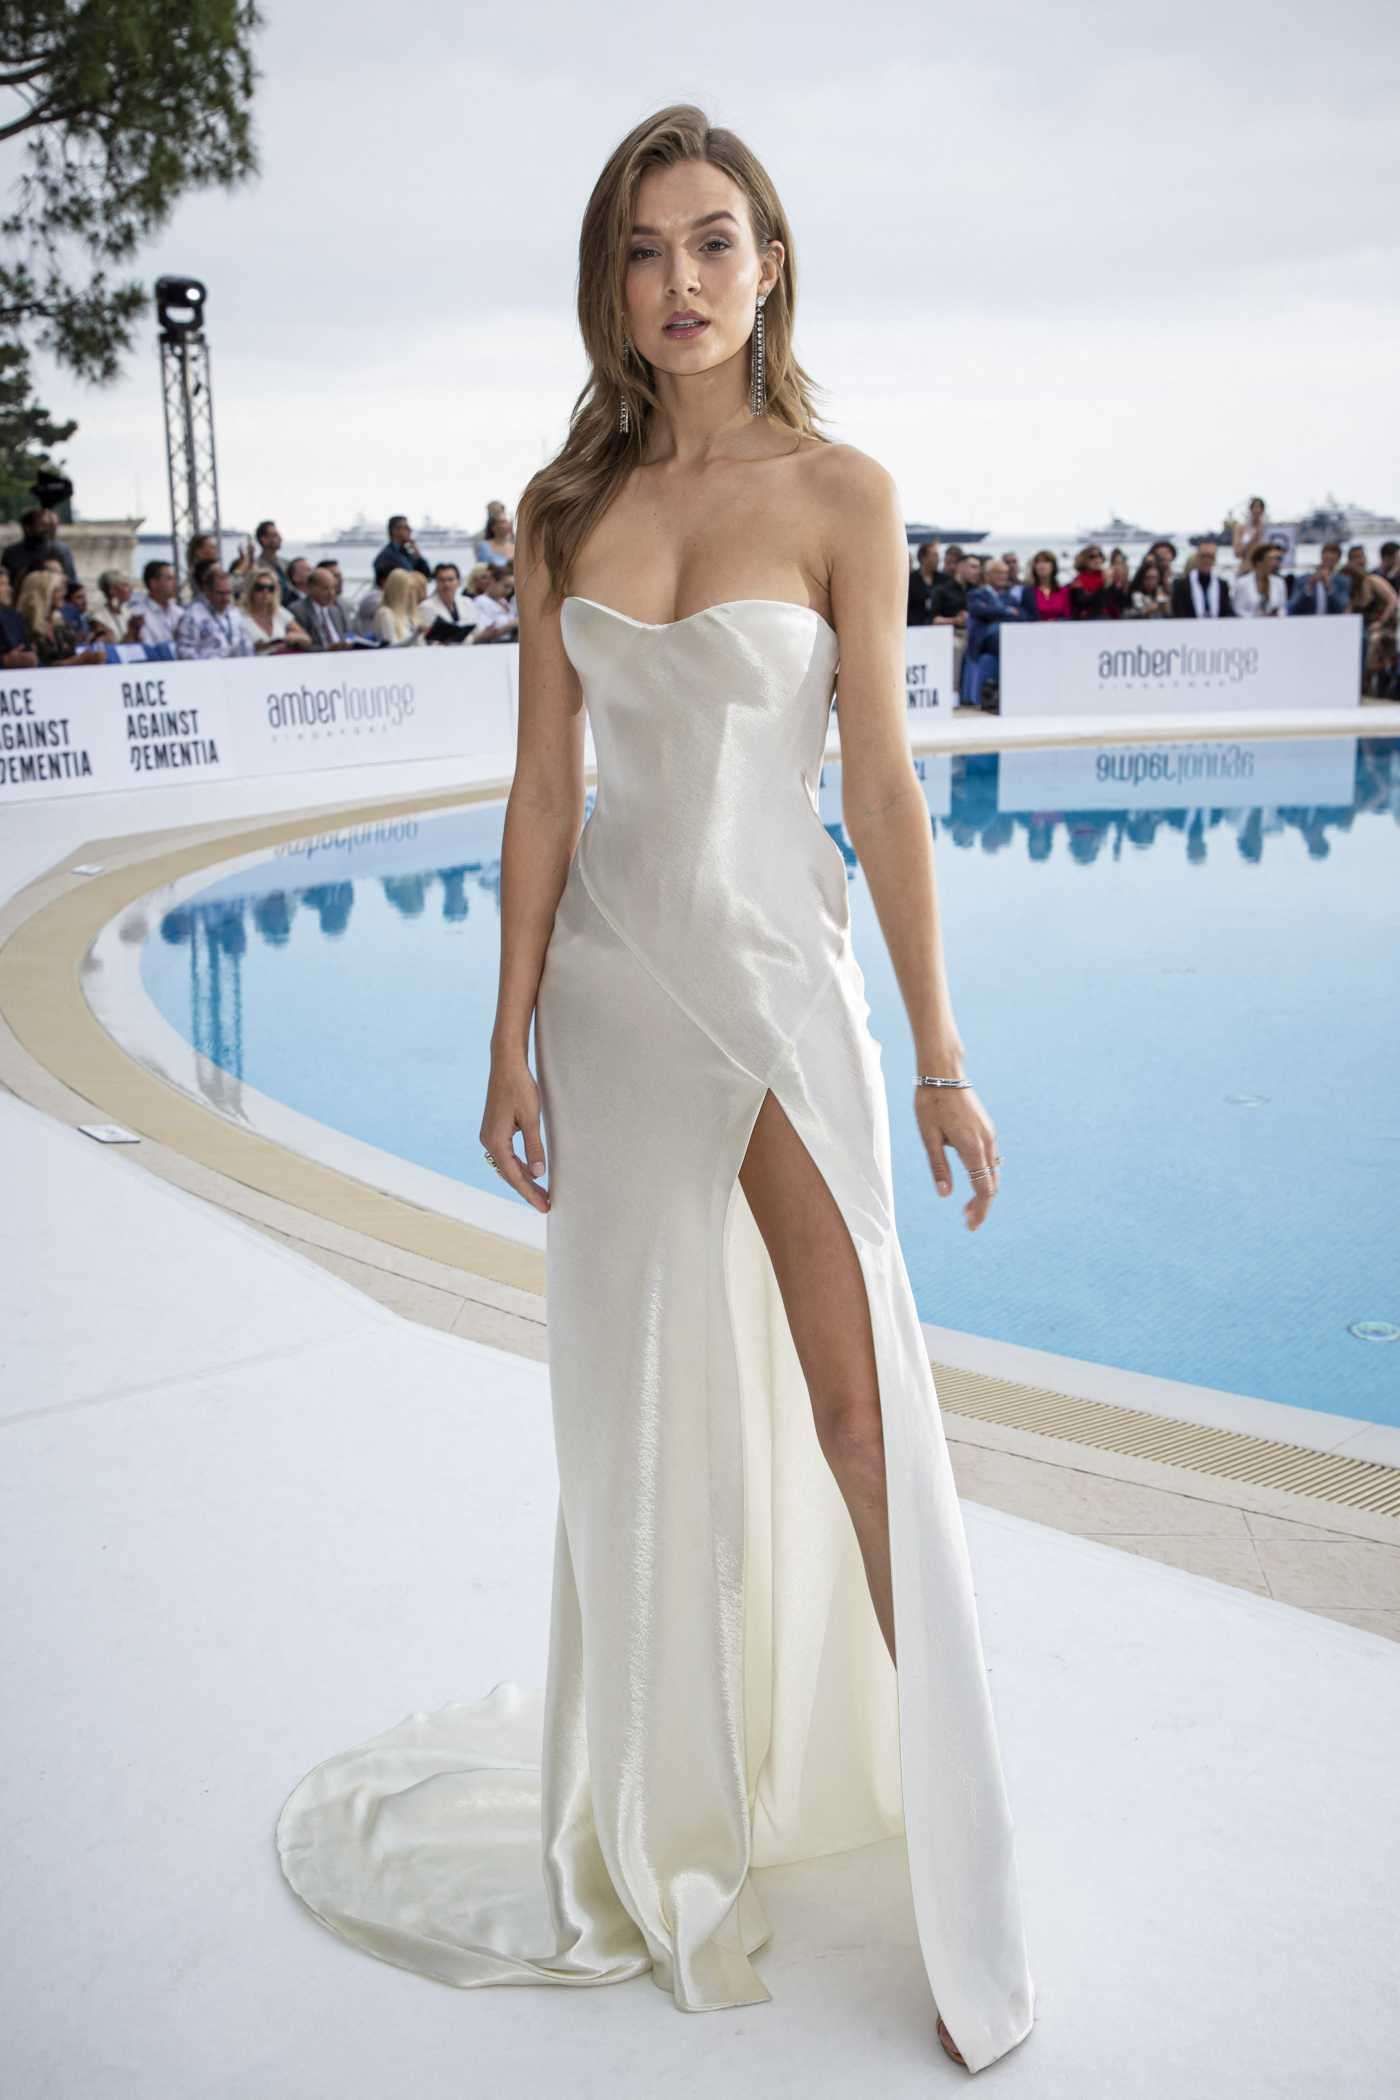 Josephine Skriver Attends the Amber Lounge Fashion Show in Monte-Carlo 05/24/2019